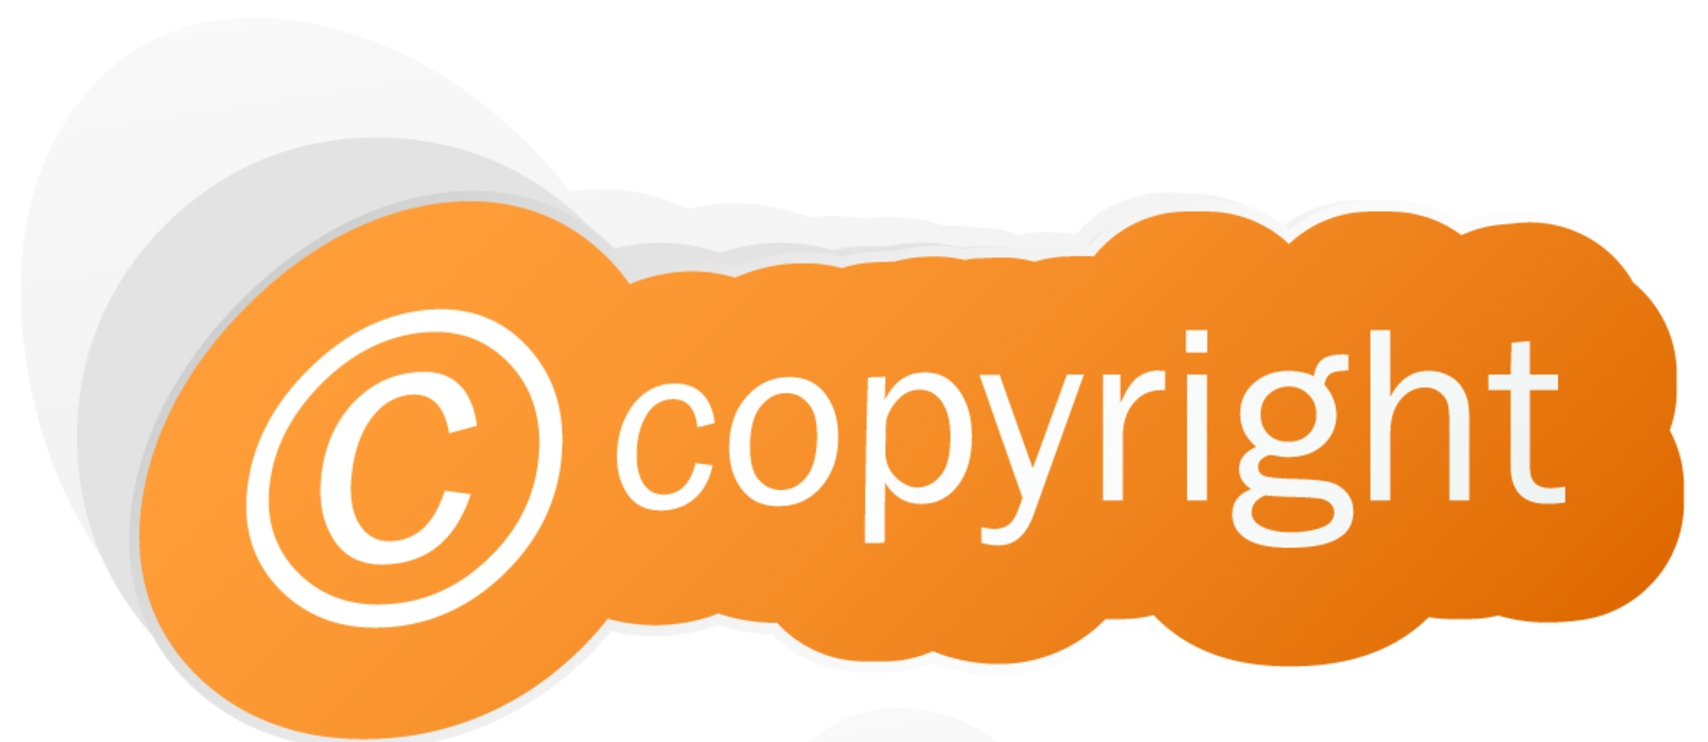 Some Of The Copyright Laws Internet Companies Can Experience